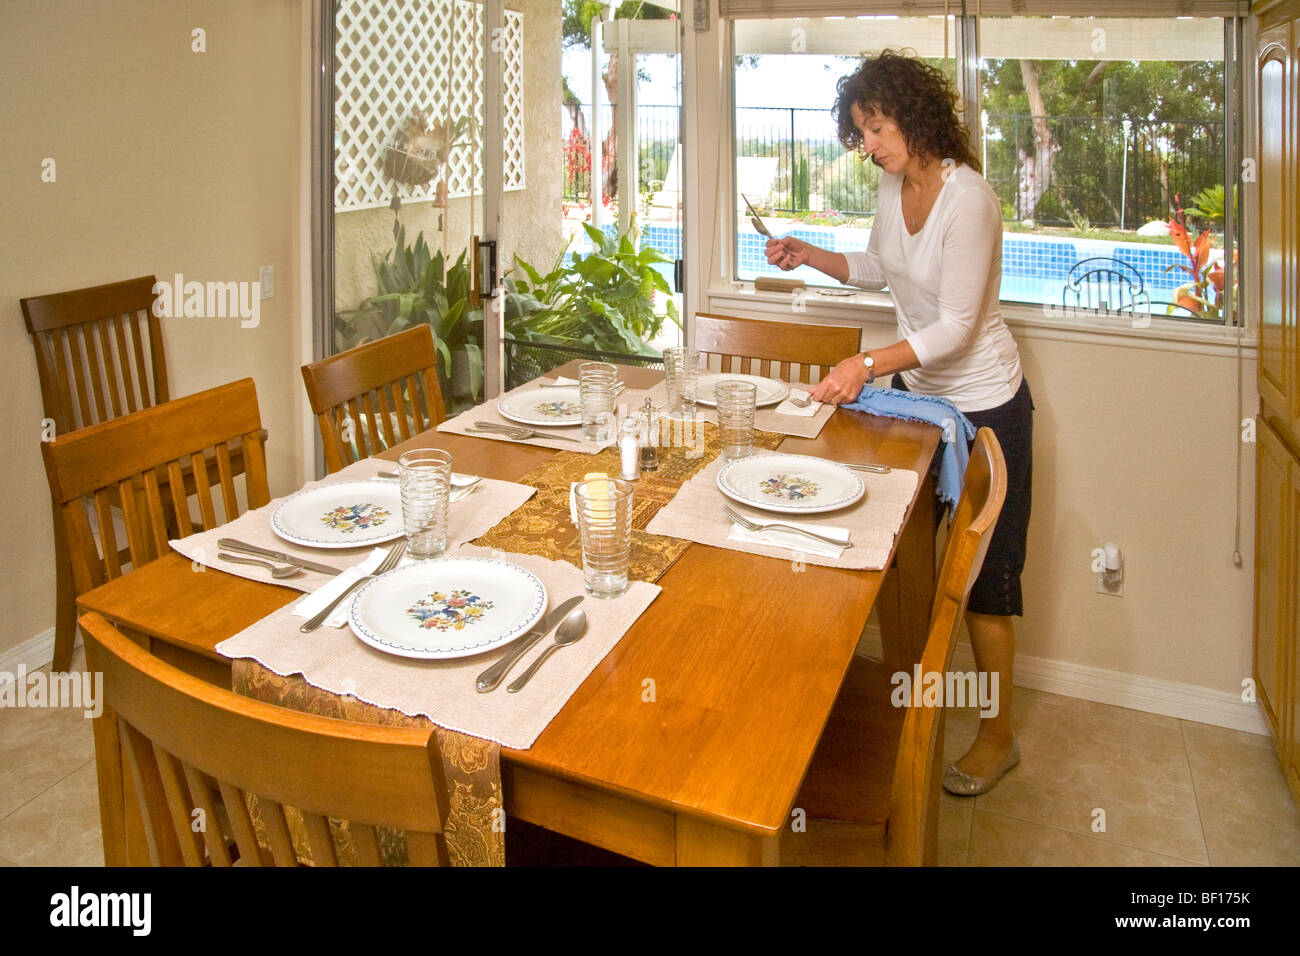 A 50 Year Old Woman Sets Dining Table For Luncheon Guests In Mission Viejo California